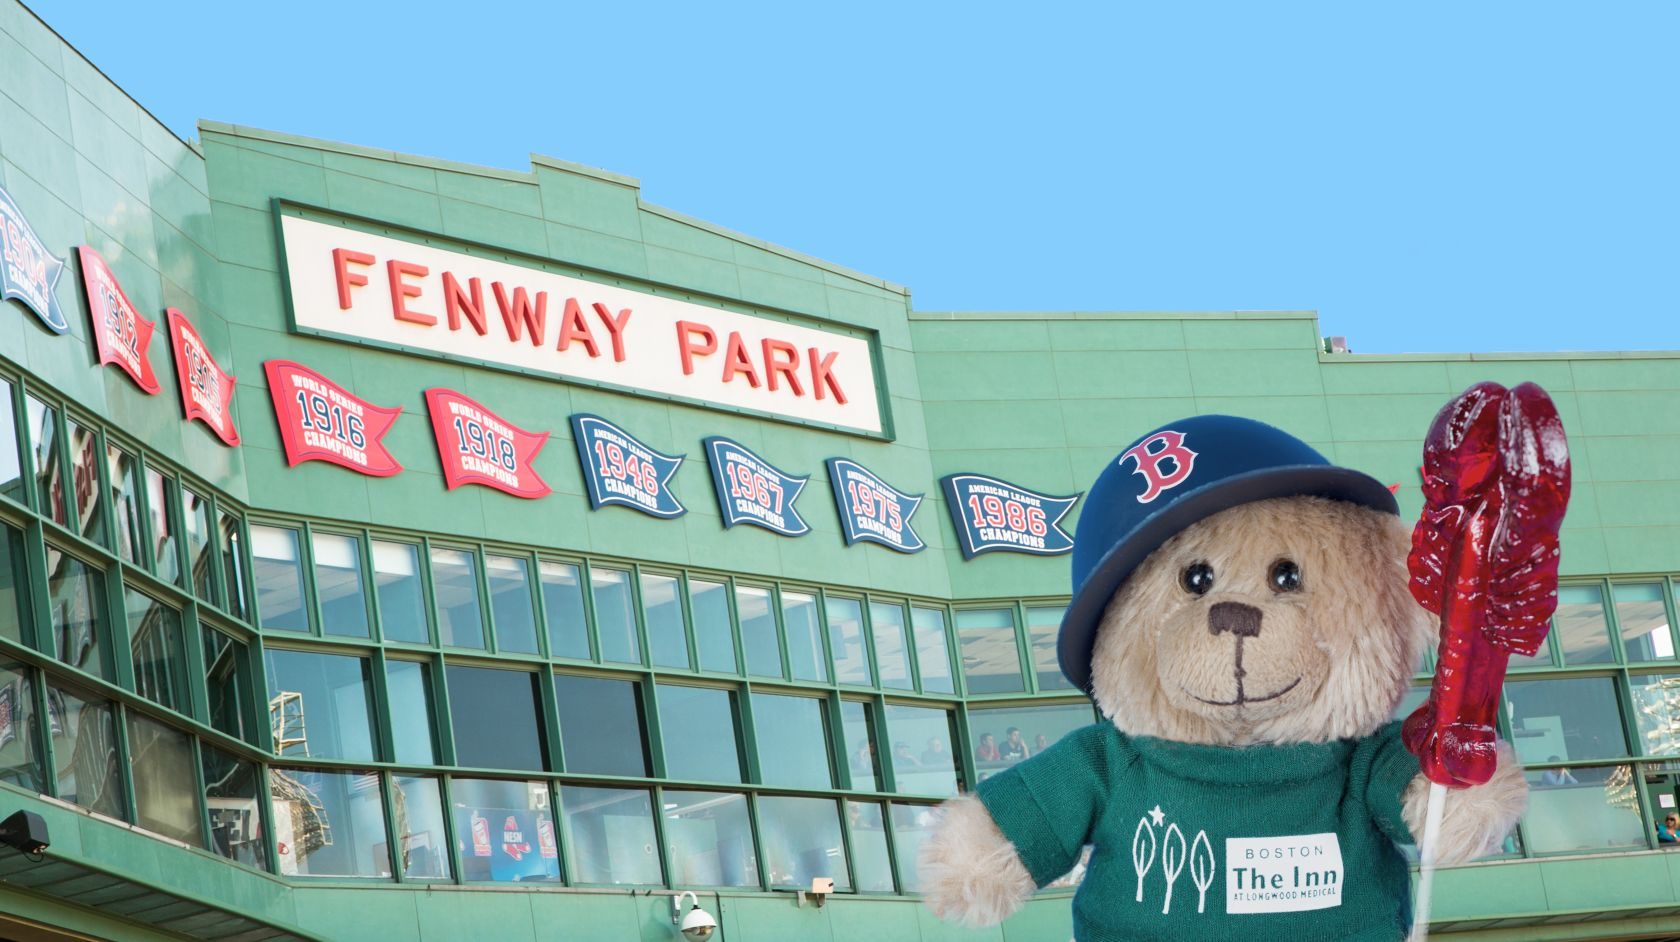 hope the bear at fenway park